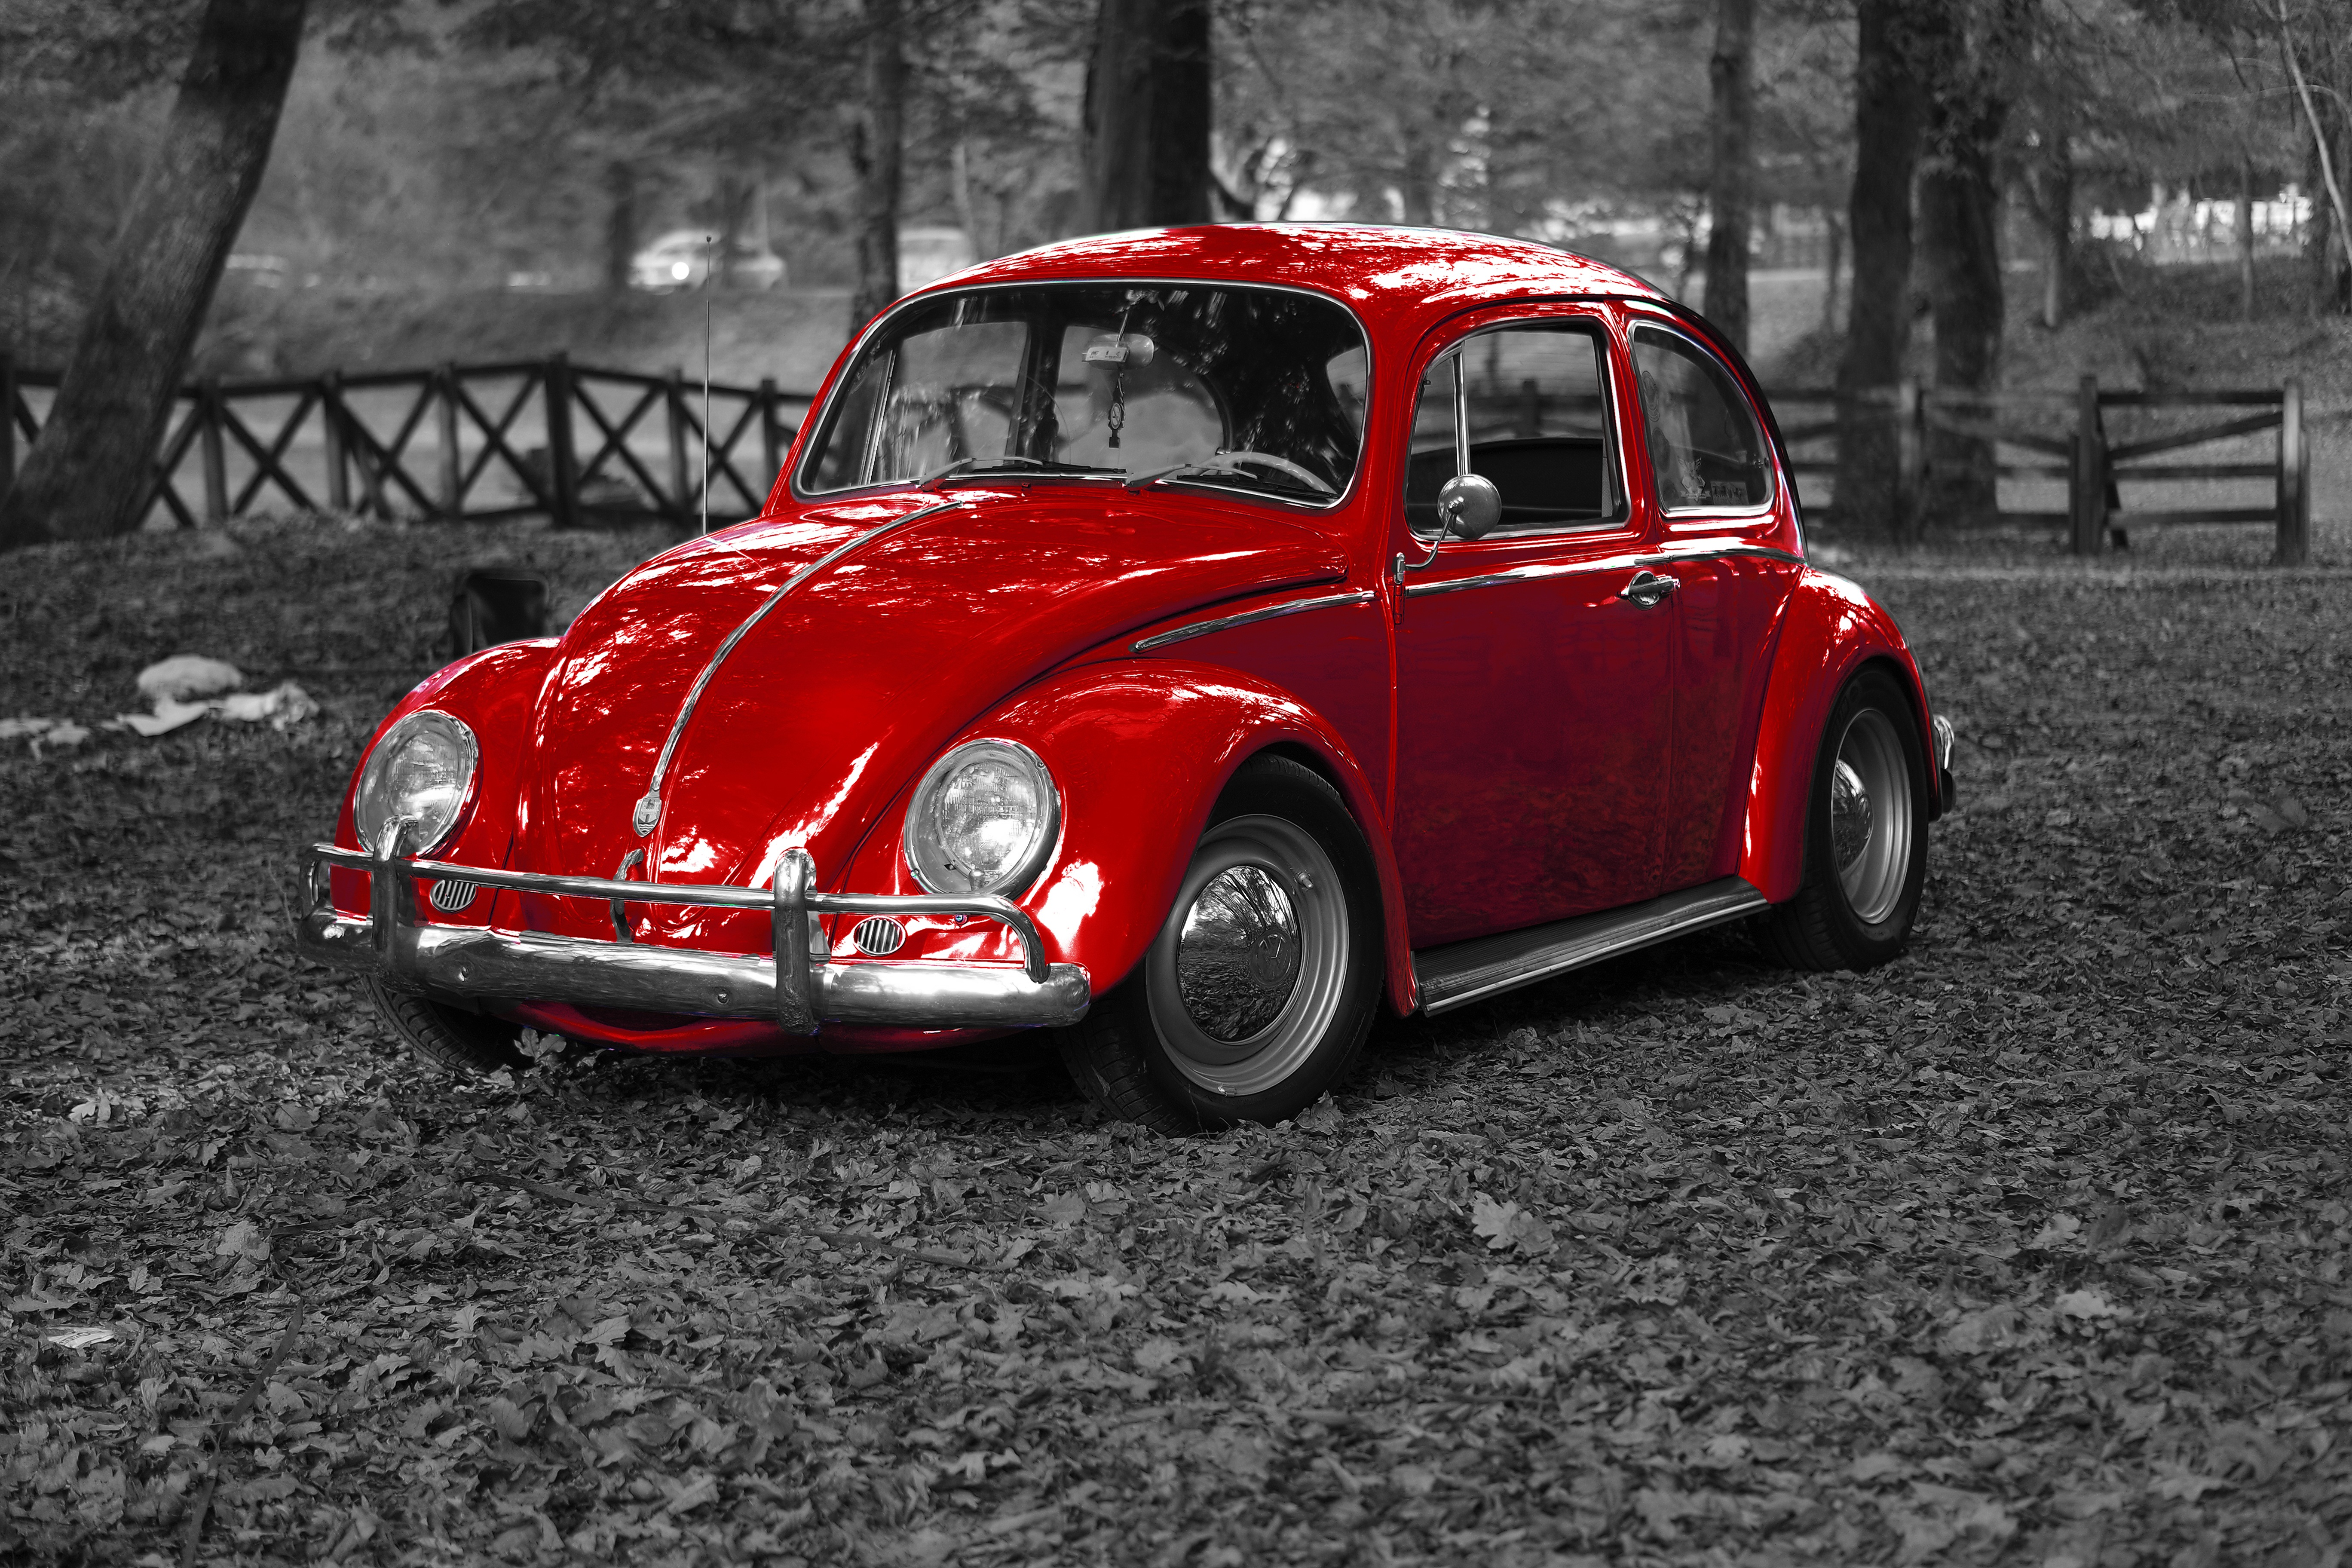 Free Images : vintage, wheel, retro, vw, old, transportation, red ...